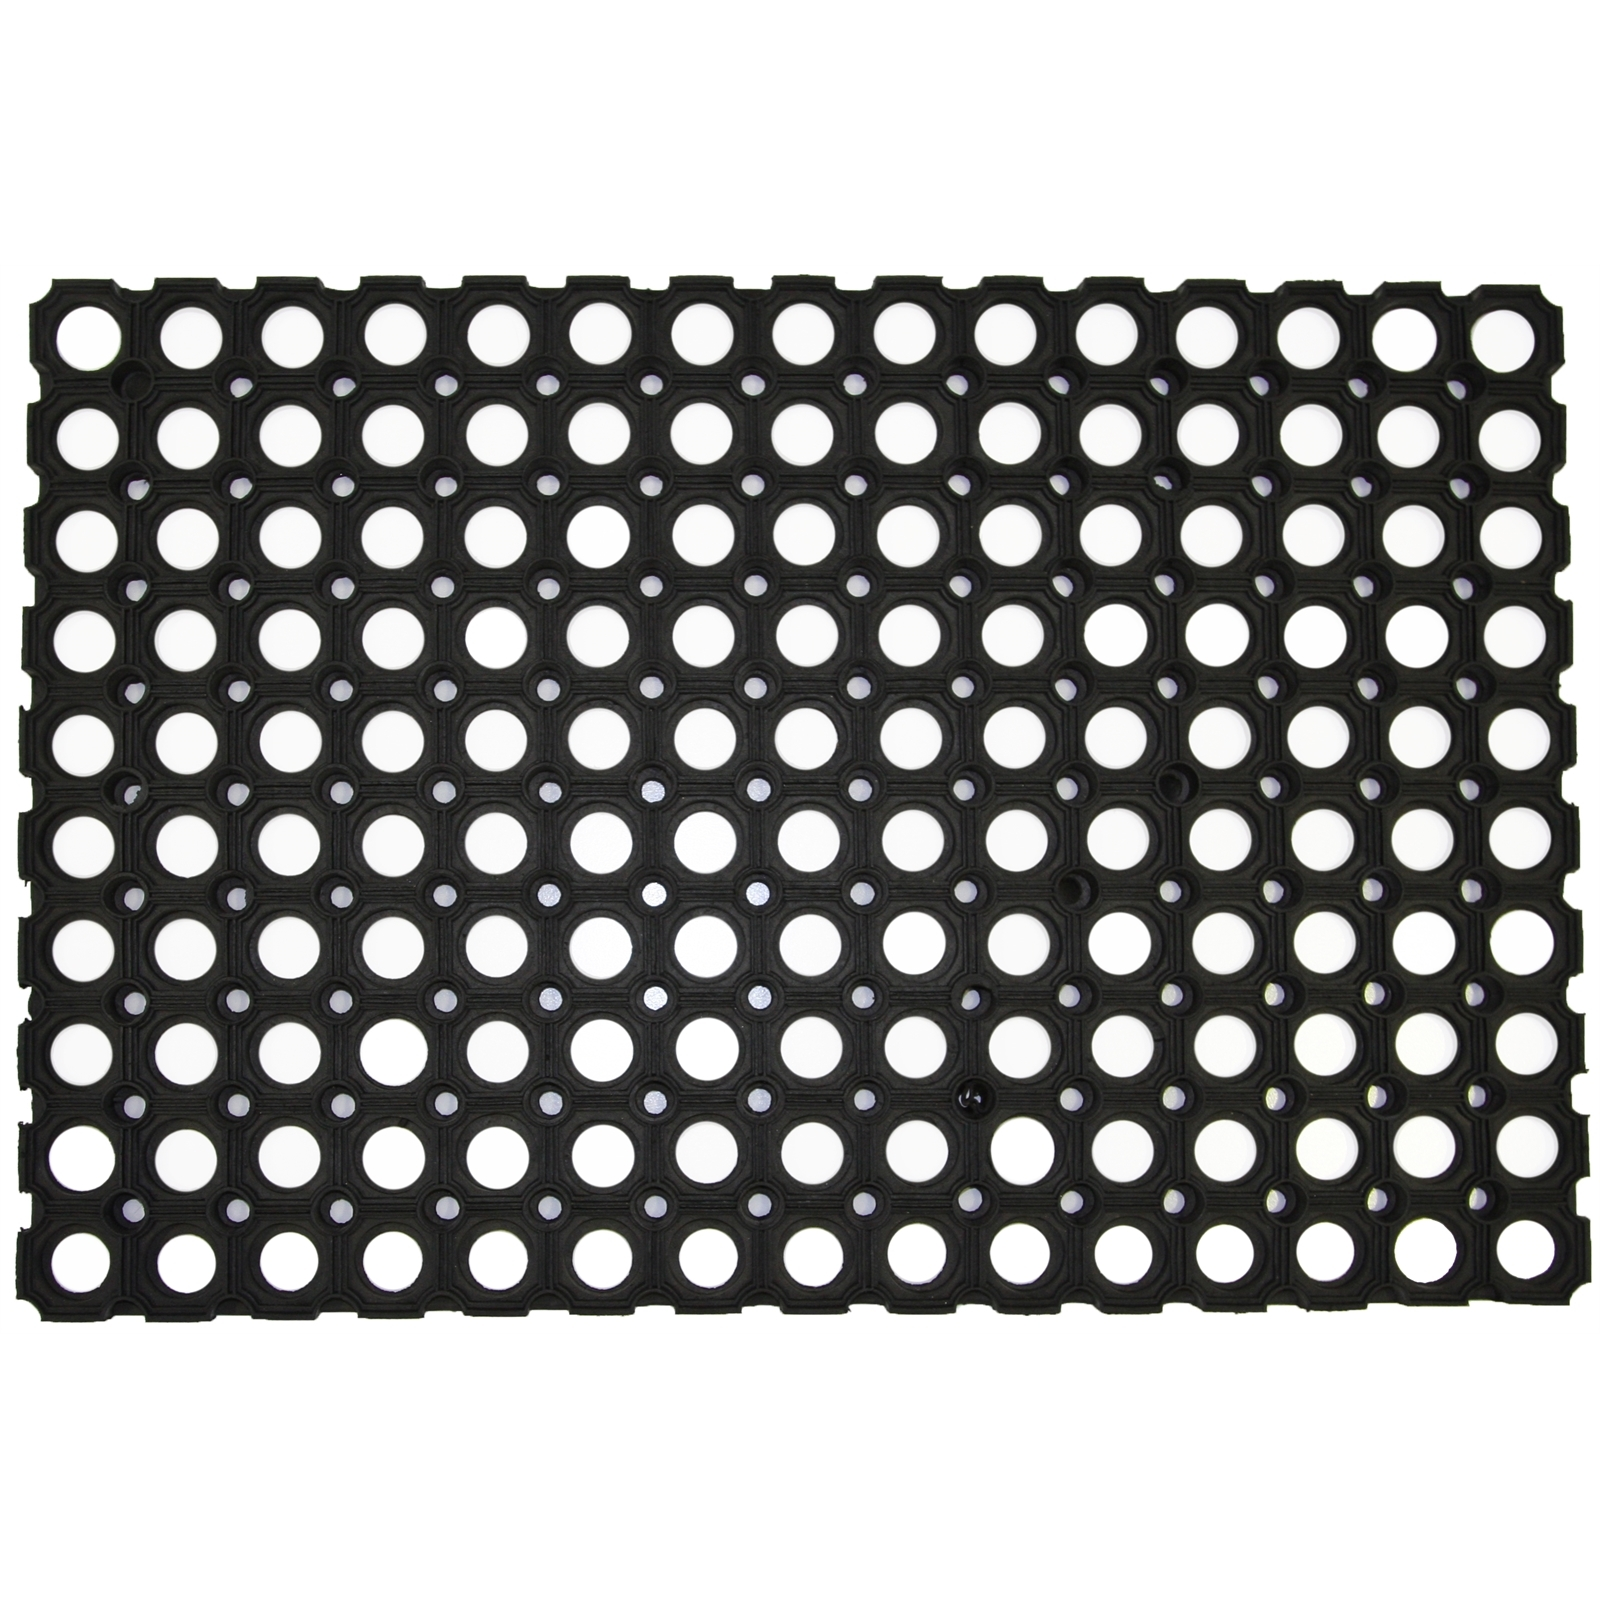 Bayliss 100 x 150cm Black Rubber Ring Commercial Mat